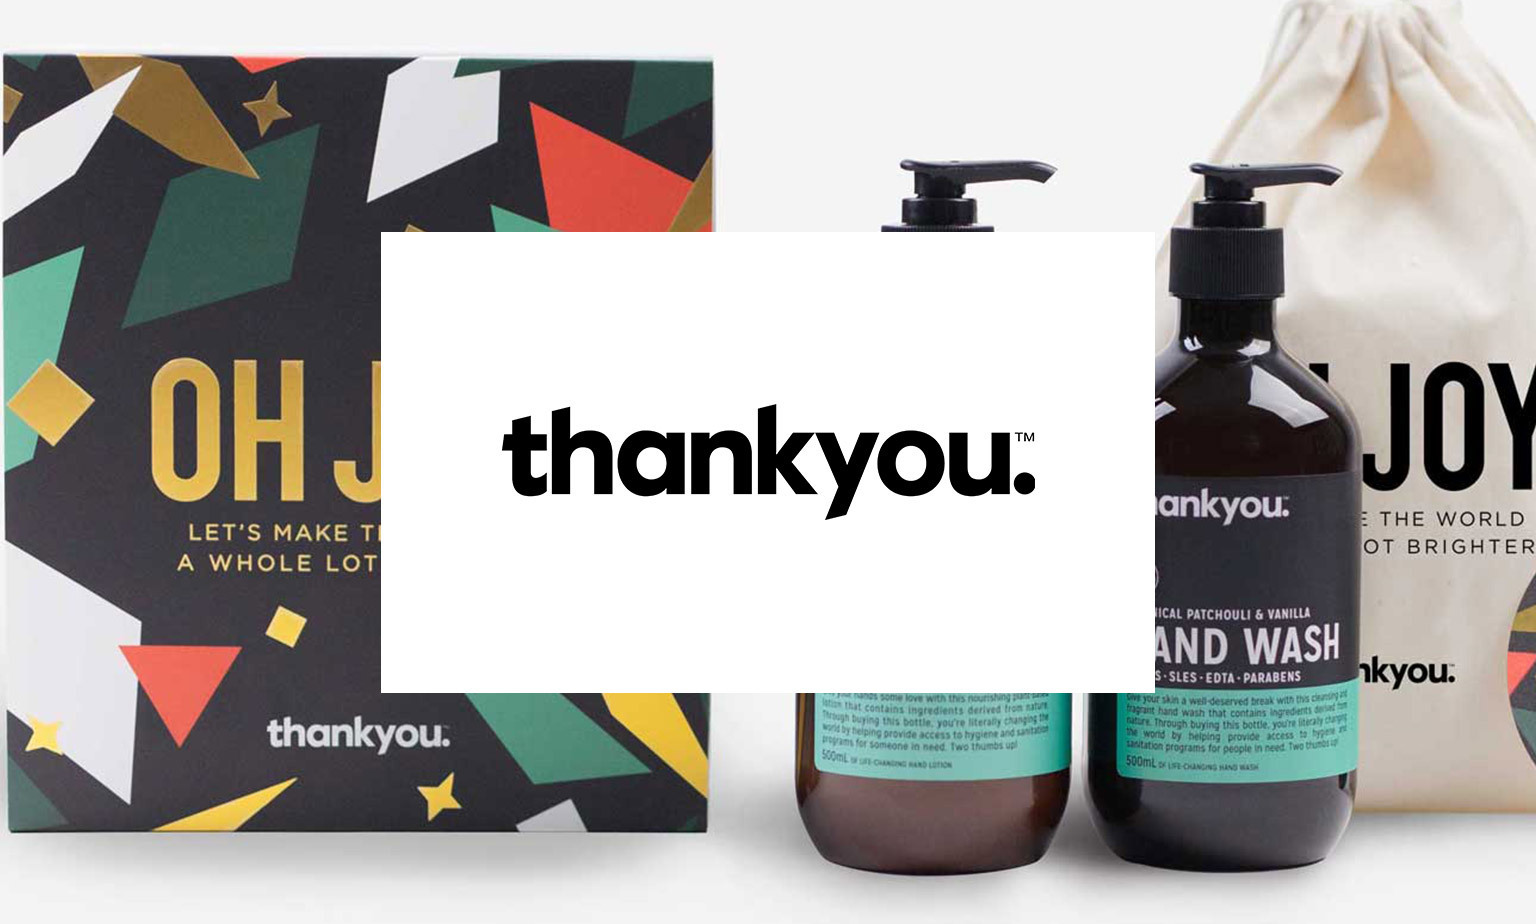 Click here to shop thankyou products now on eBay